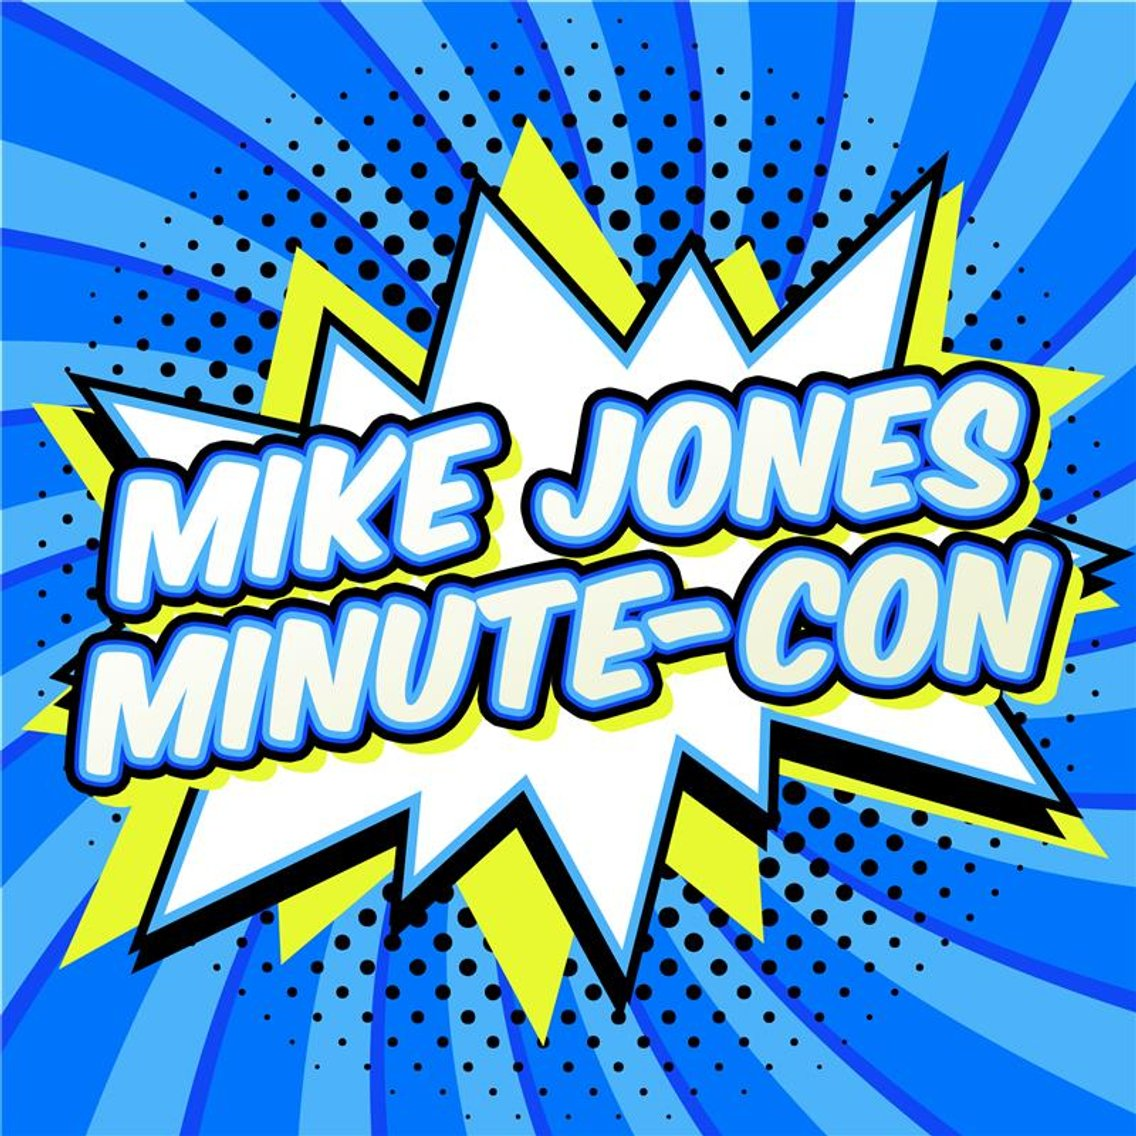 Mike Jones Minute-Con - Cover Image